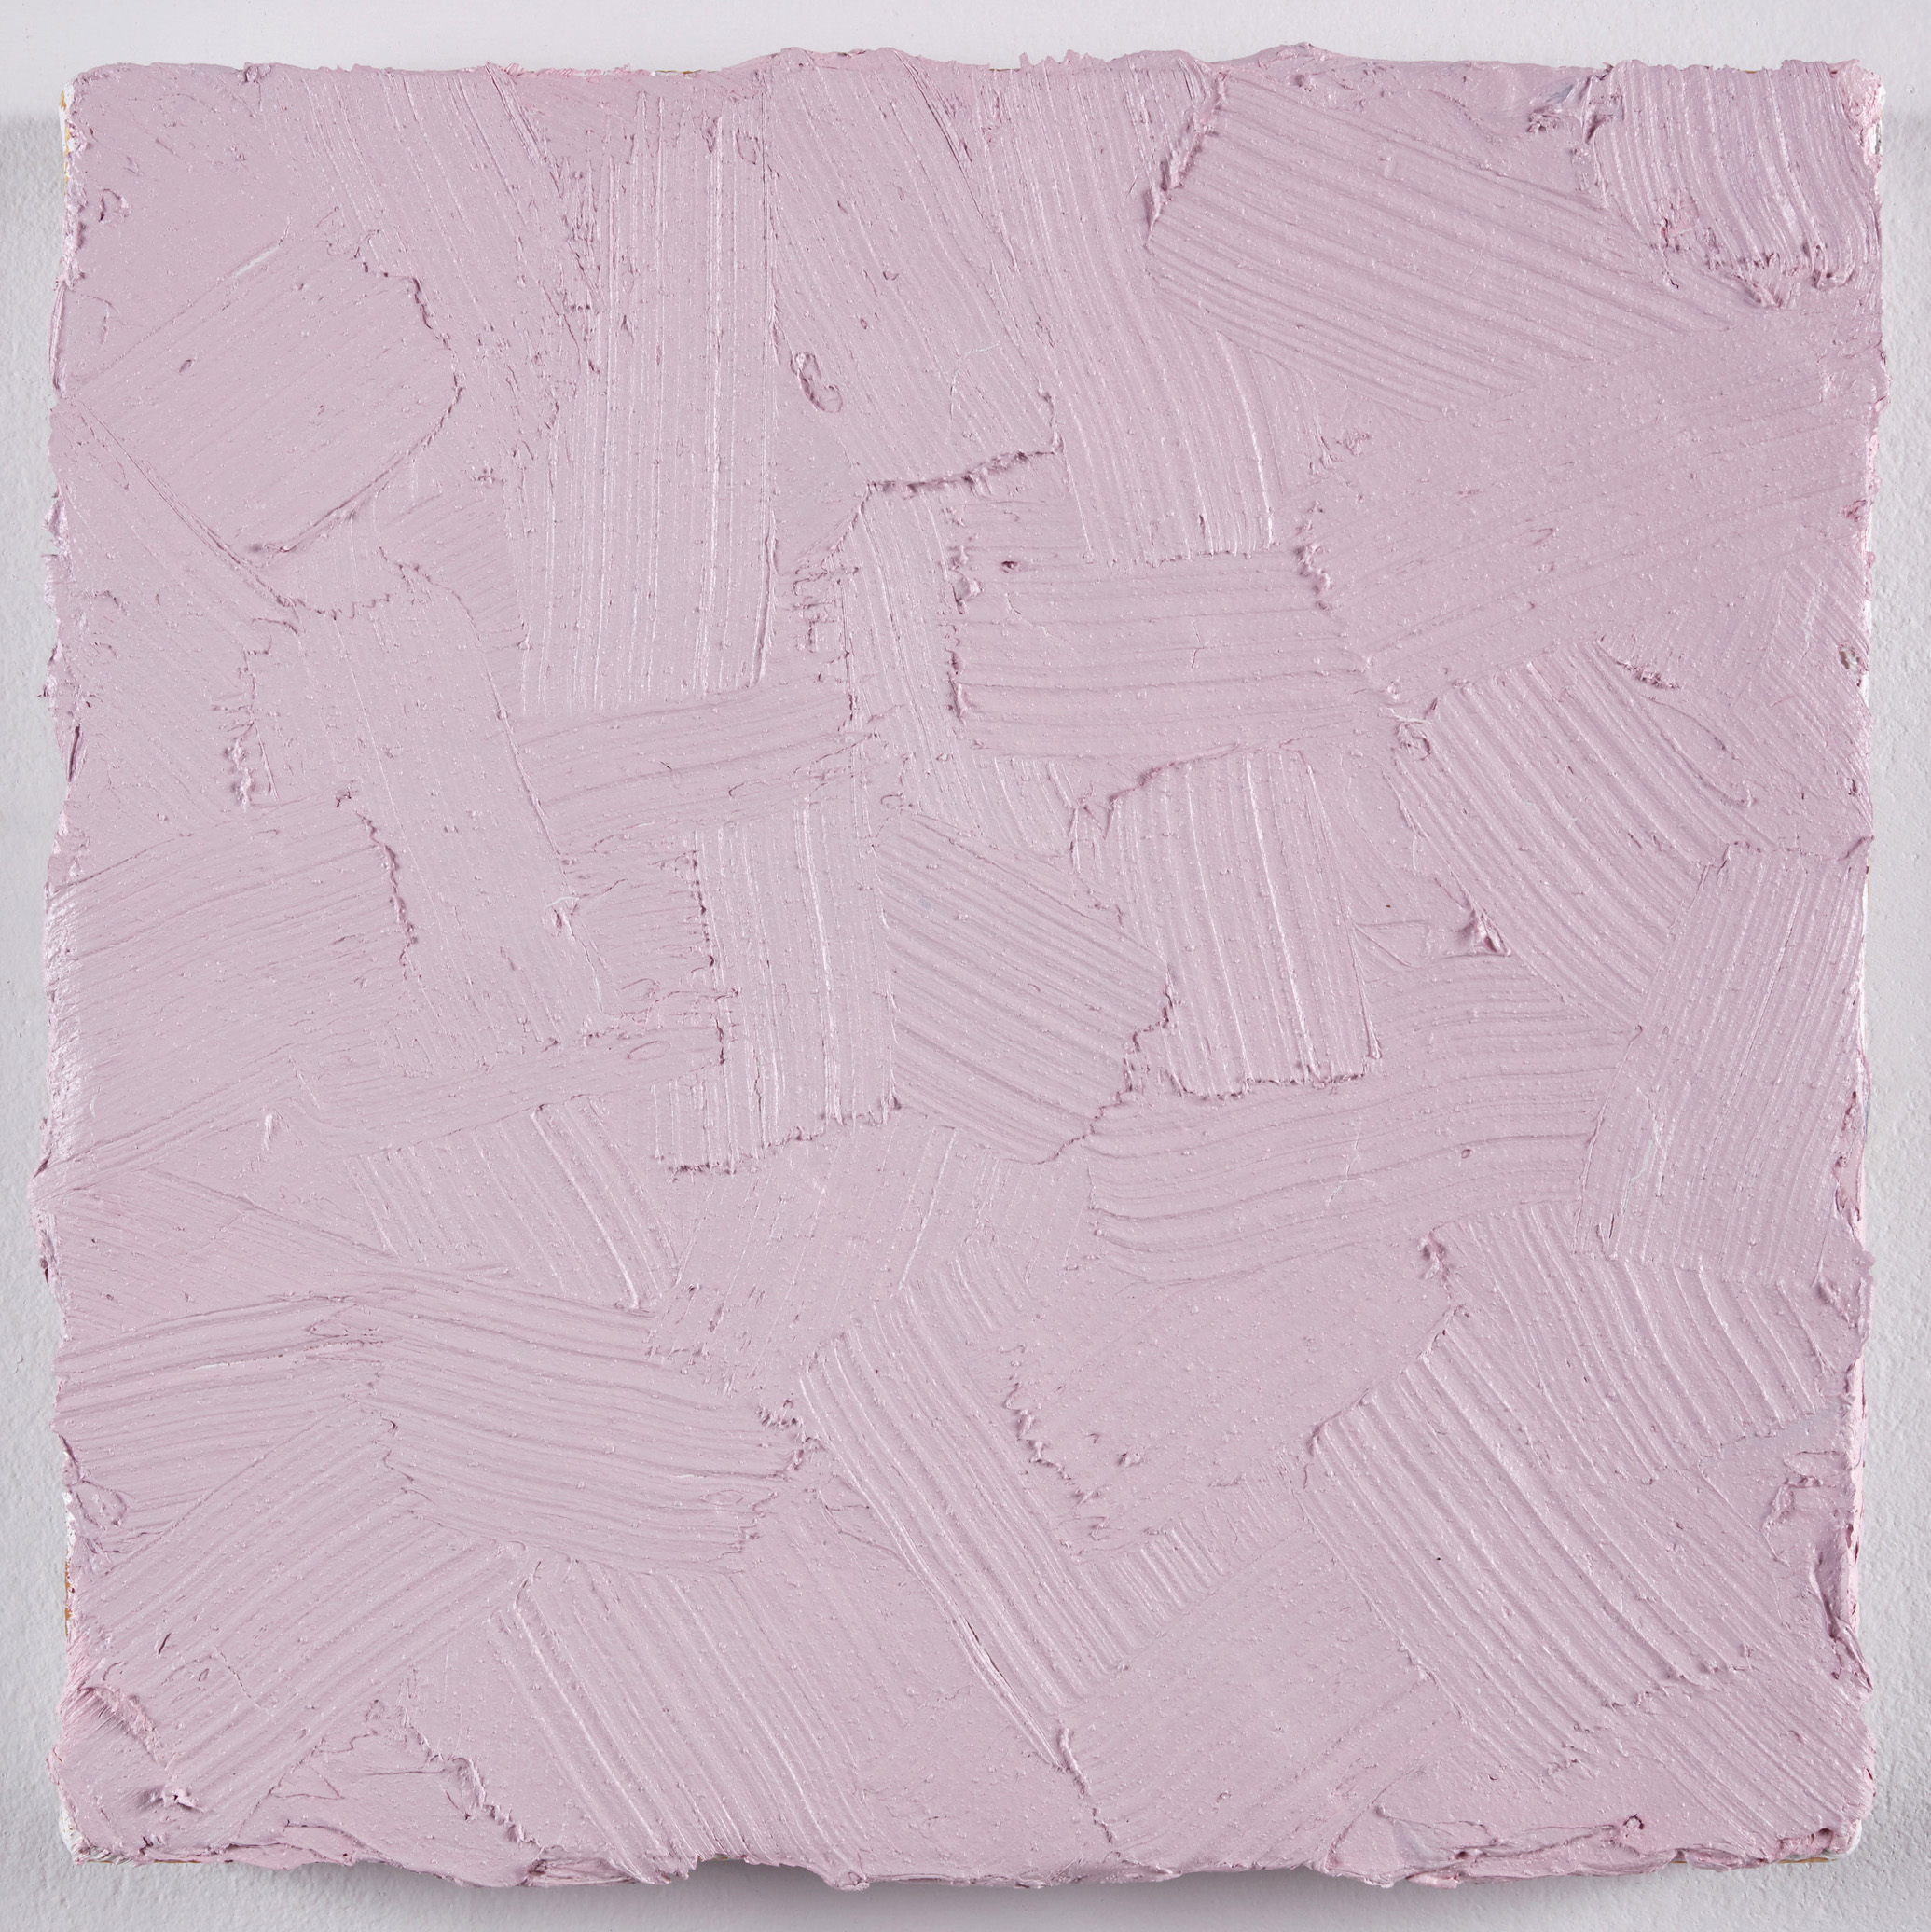 DAVID SERISIER  pink square painting , 2019 oil, wax and acrylic on linen 30.5 x 30.5 cm